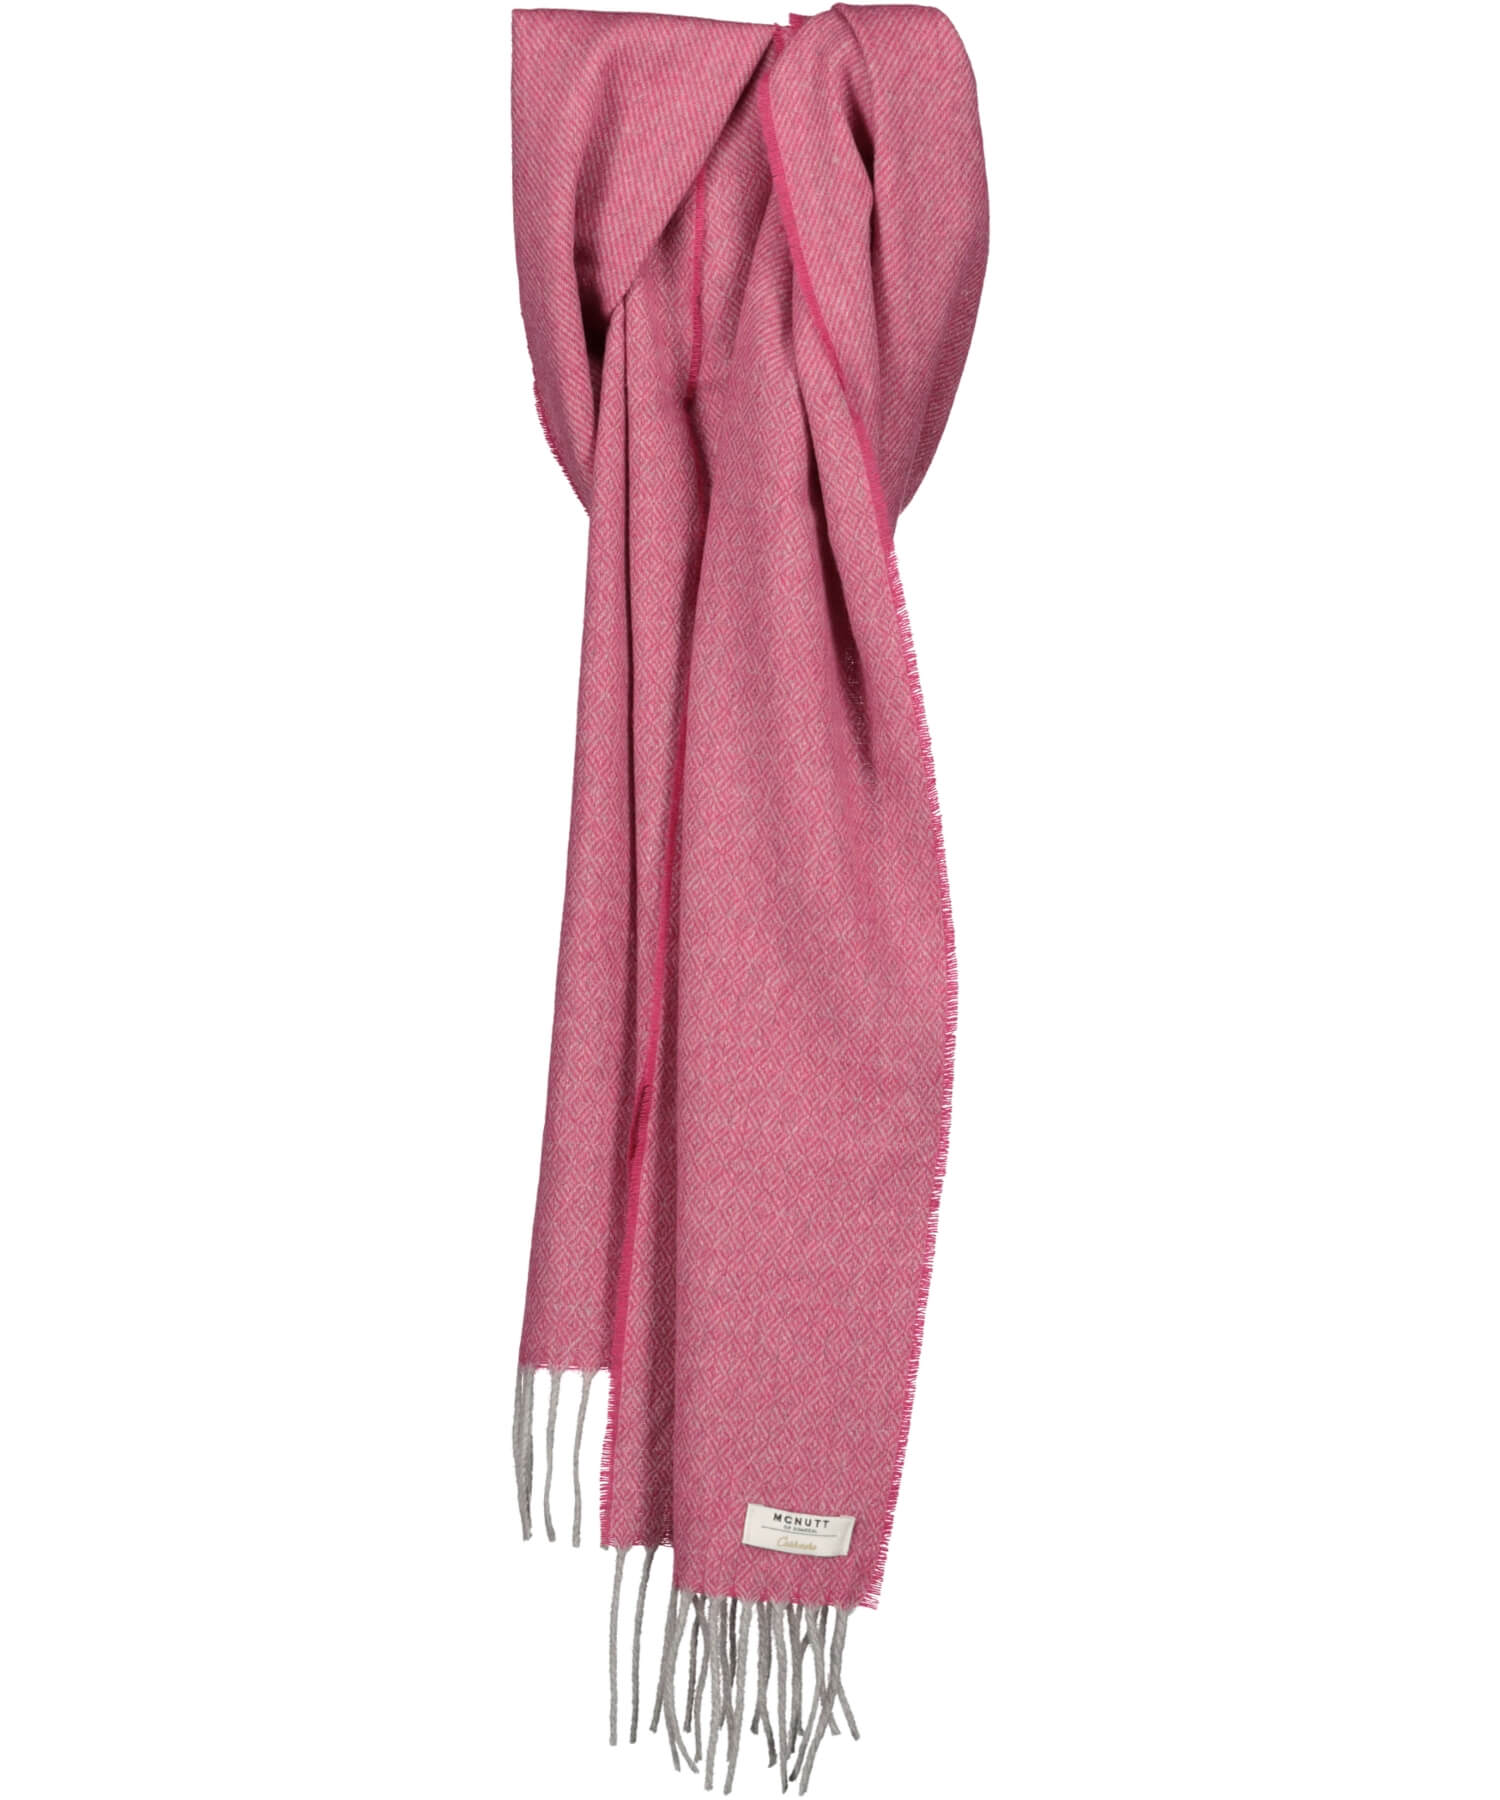 Cashmere Scarf - Hot Pink - [McNutts] - Ladies Scarves & Gloves - Irish Gifts